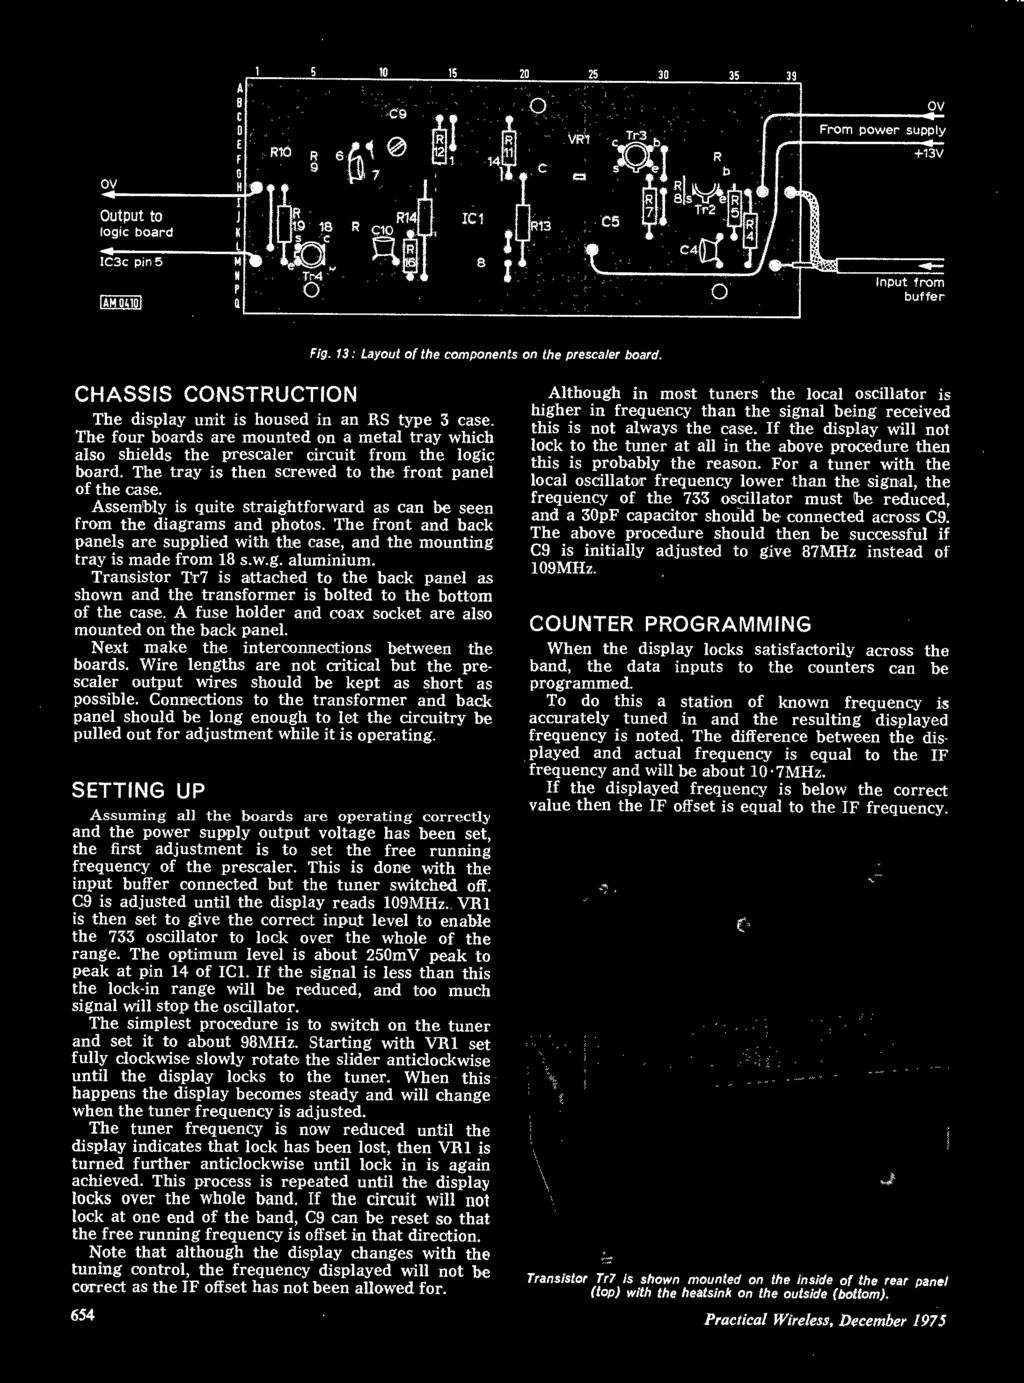 8 Page Supplement Insidealso 2m Fm Transmitter Stabilised Power 120v Heat Tape Wiring Furthermore Toy Train Layout Further Transistor Tr7 Is Attached To The Back Panel As Shown And Transformer Bolted